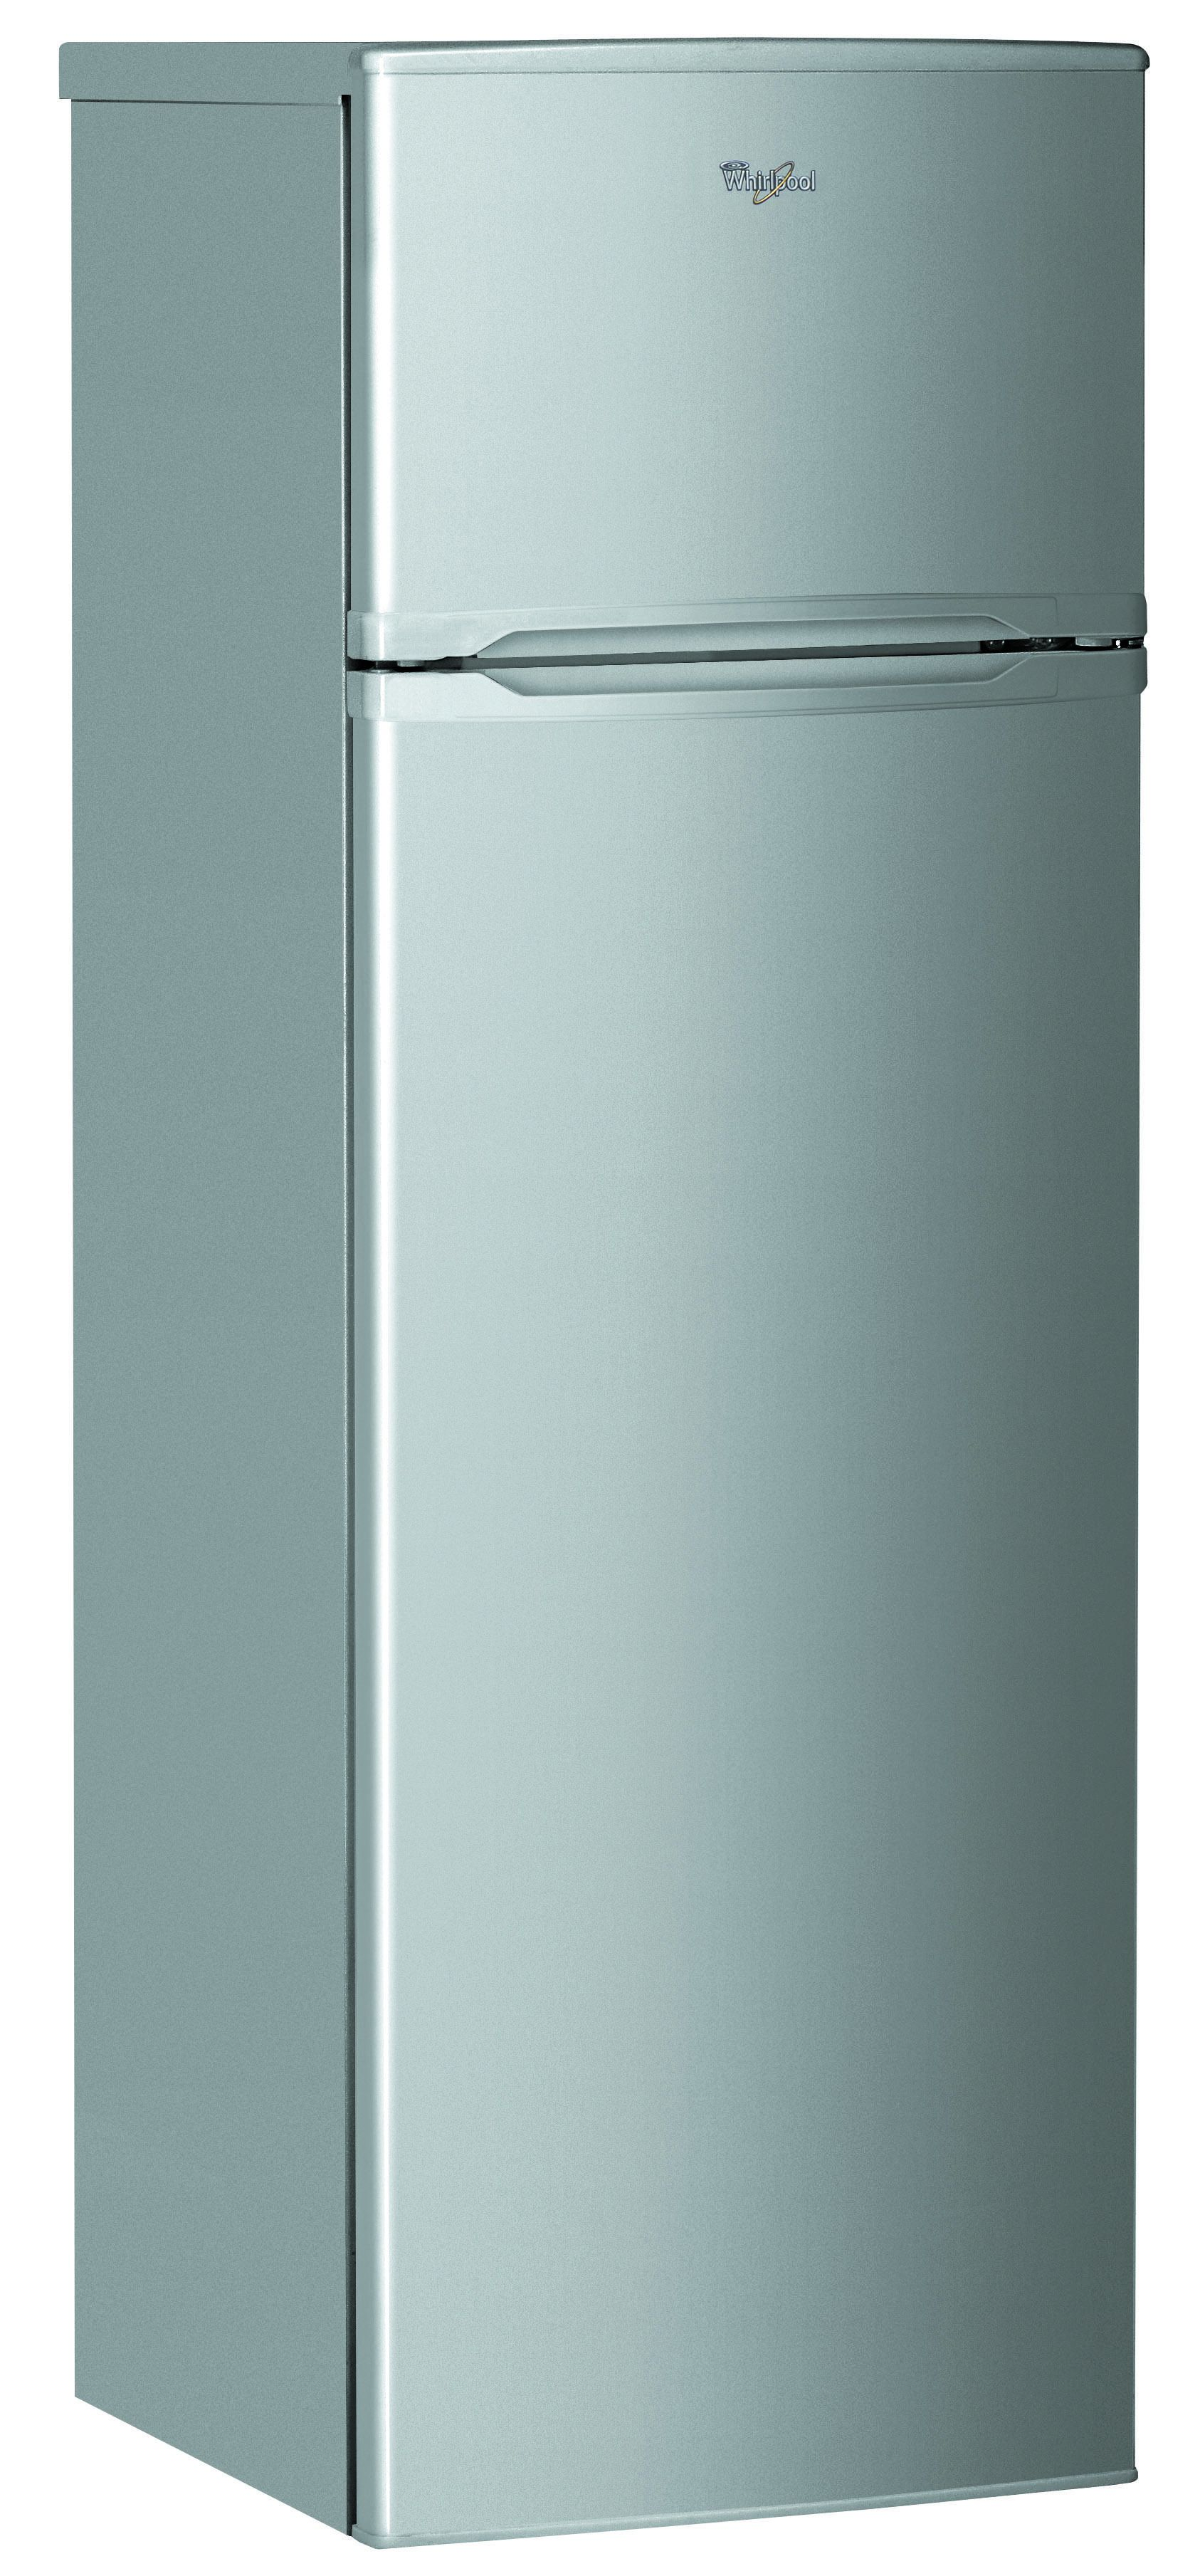 Etagere refrigerateur whirlpool 48963 etagere id es for Decoration porte frigidaire